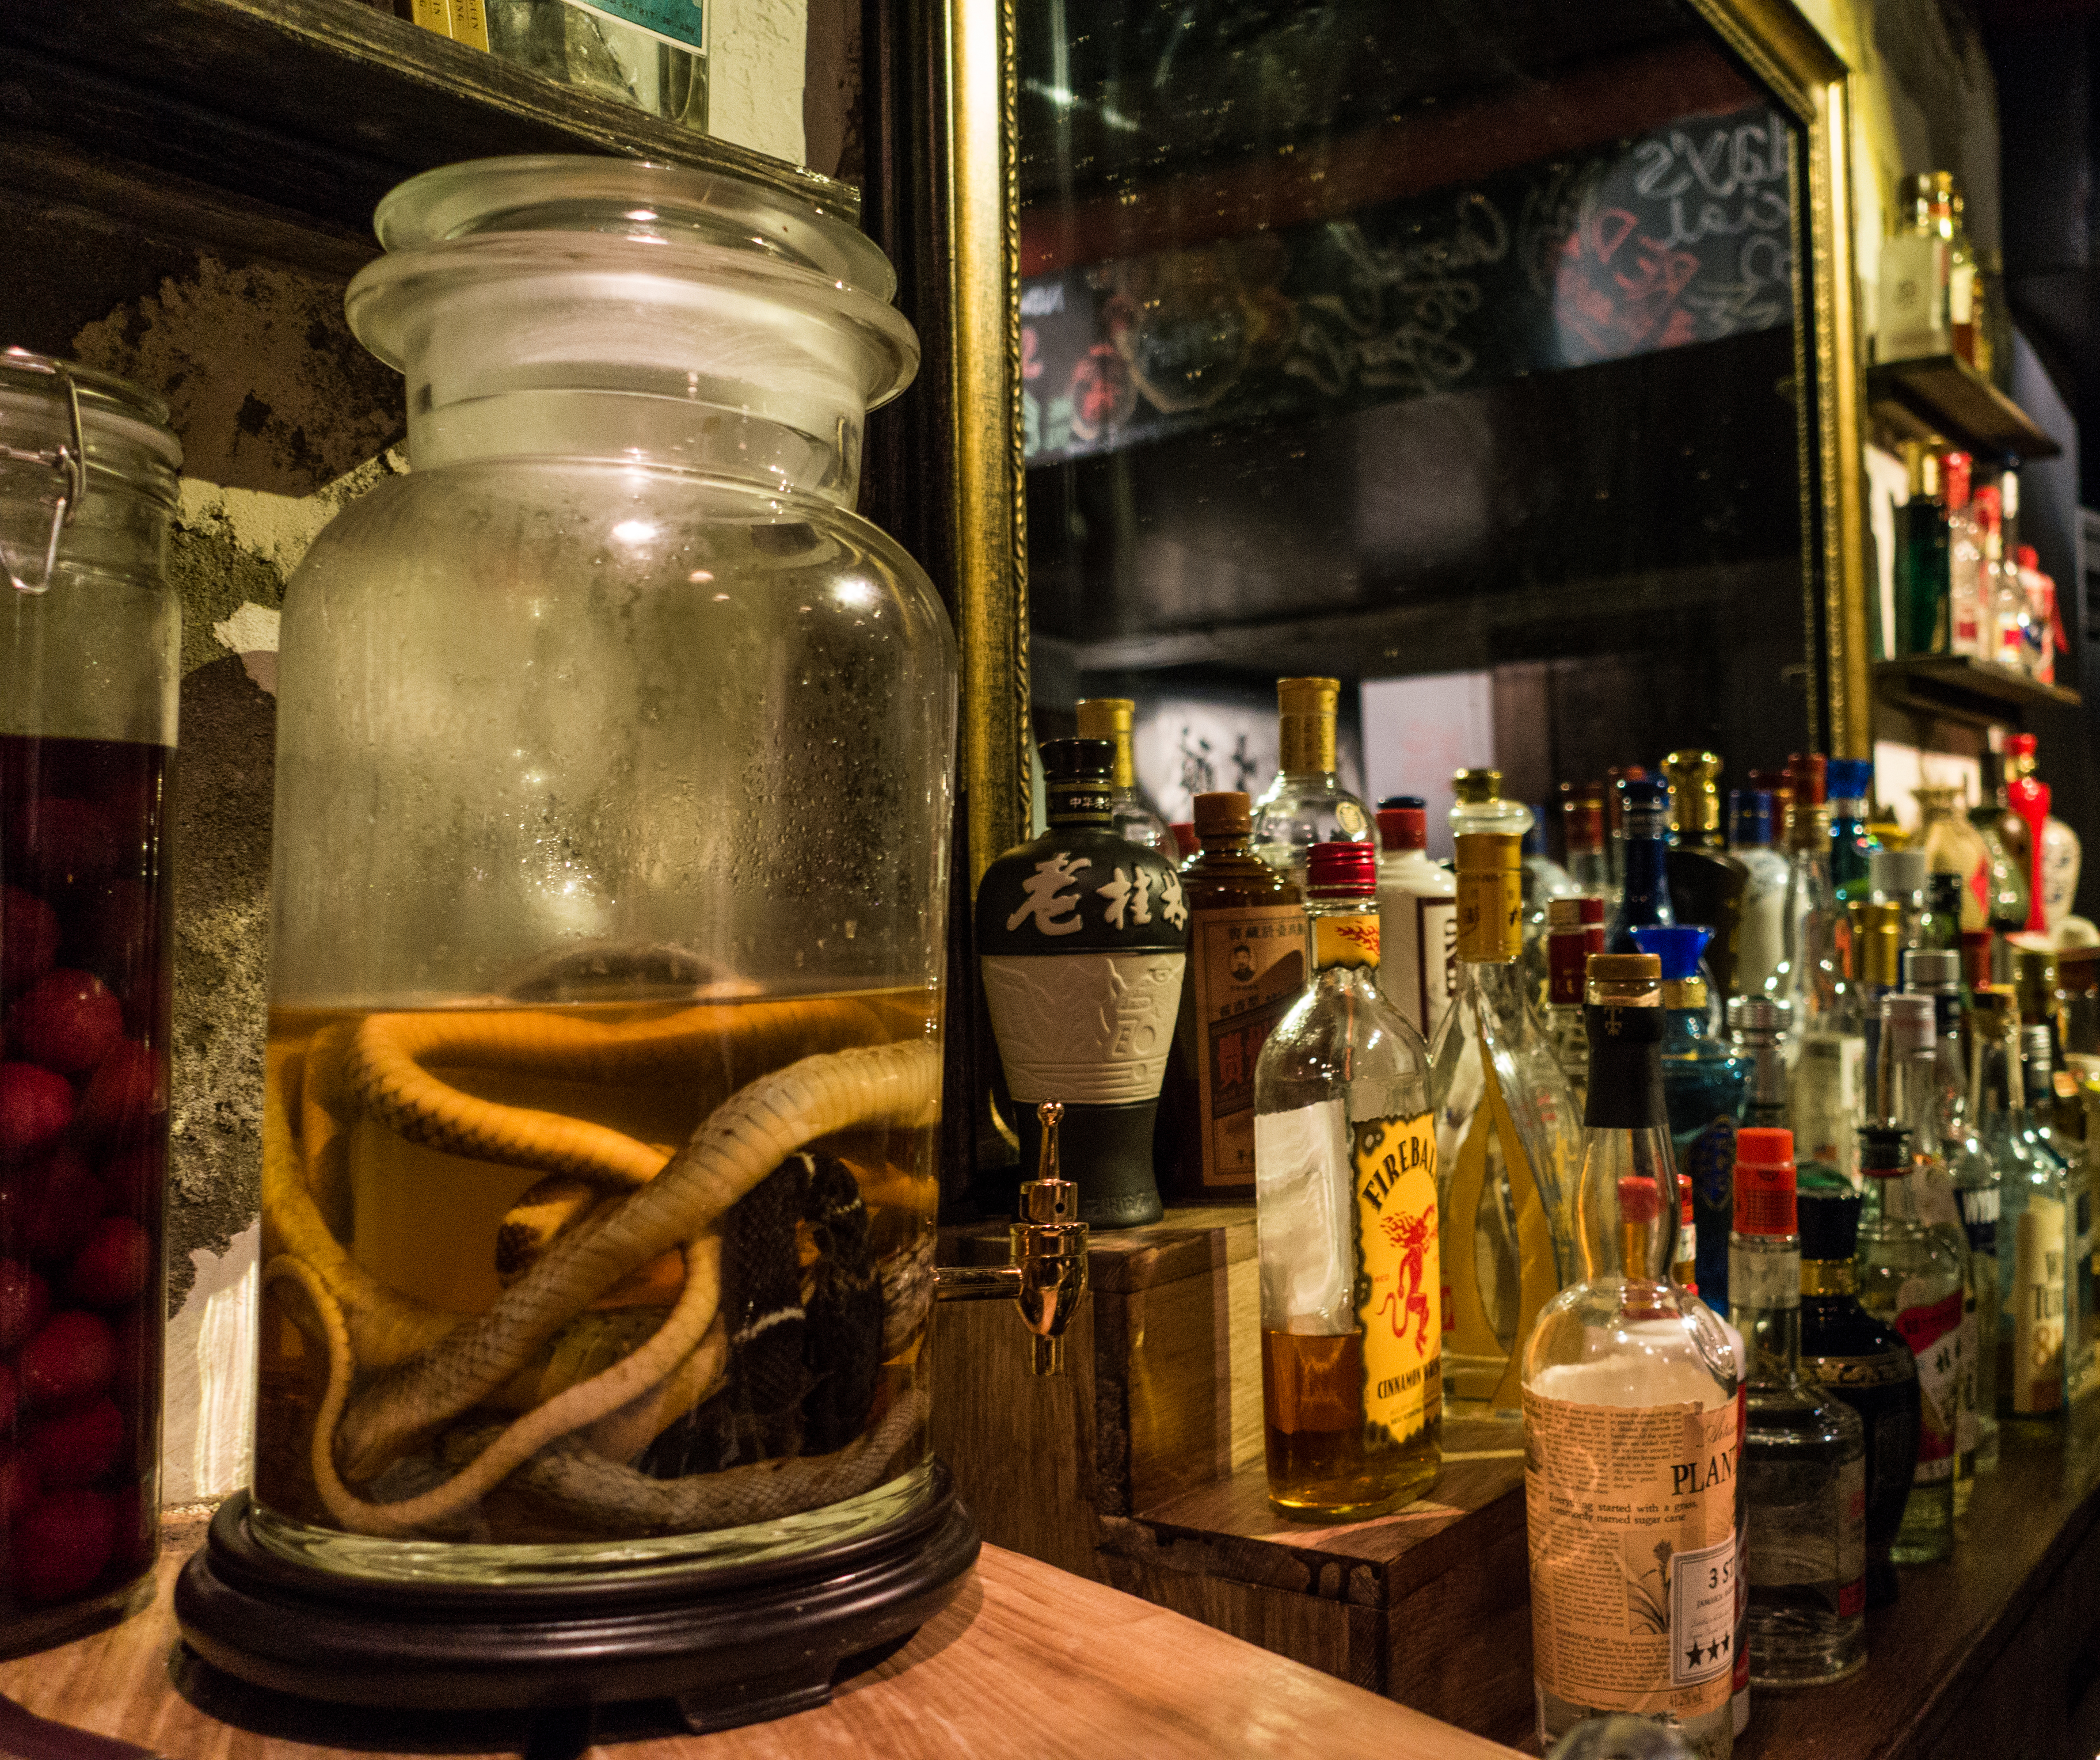 Photo 1: A snake flavored baijiu stands behind the bar at Capital Spirits. Photo 2: At a restaurant in Chengdu a worker prepares to down a shot of baijiu.